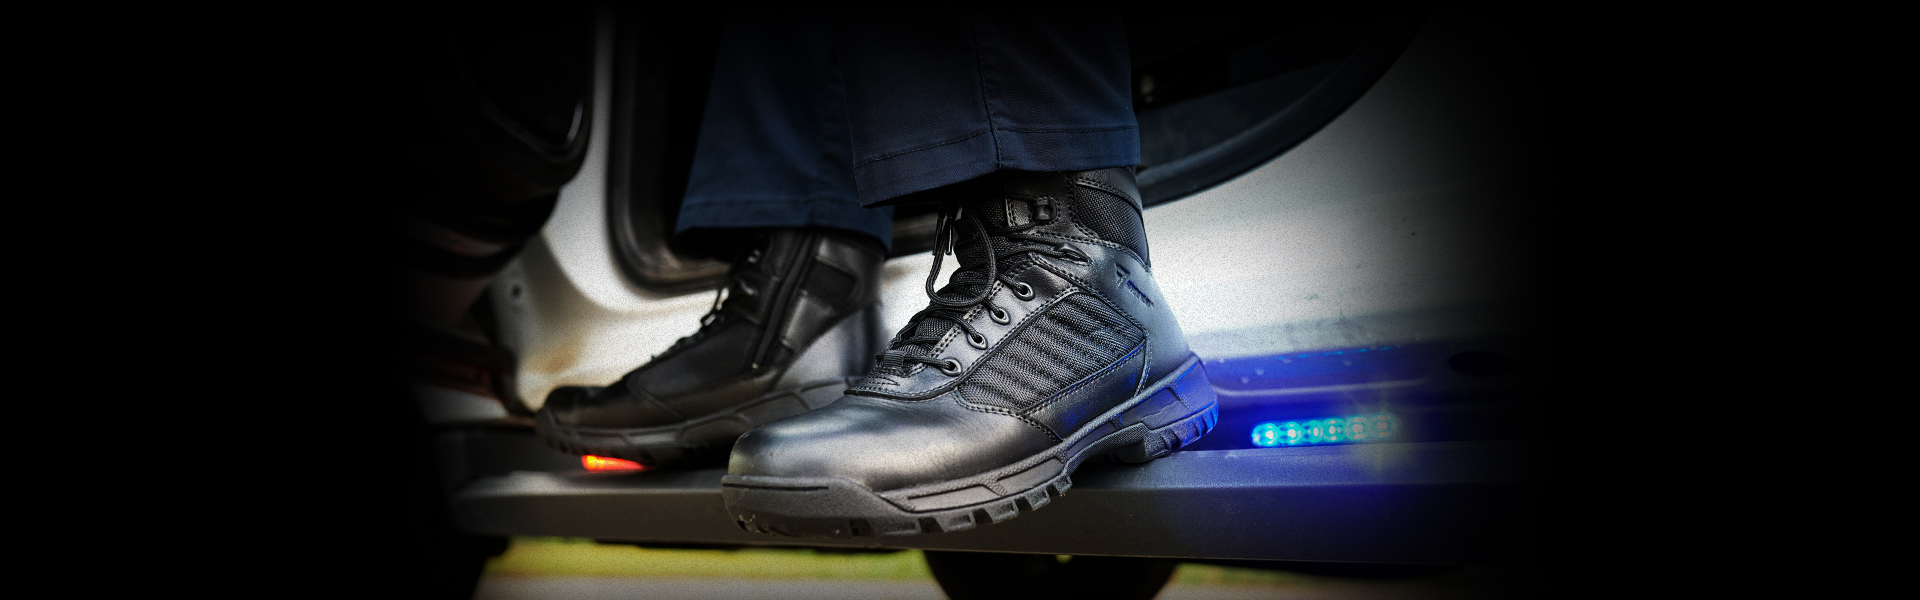 Introducing the Tactical Sport 2. Redesigned from the ground up and built for the hardest job on Earth.